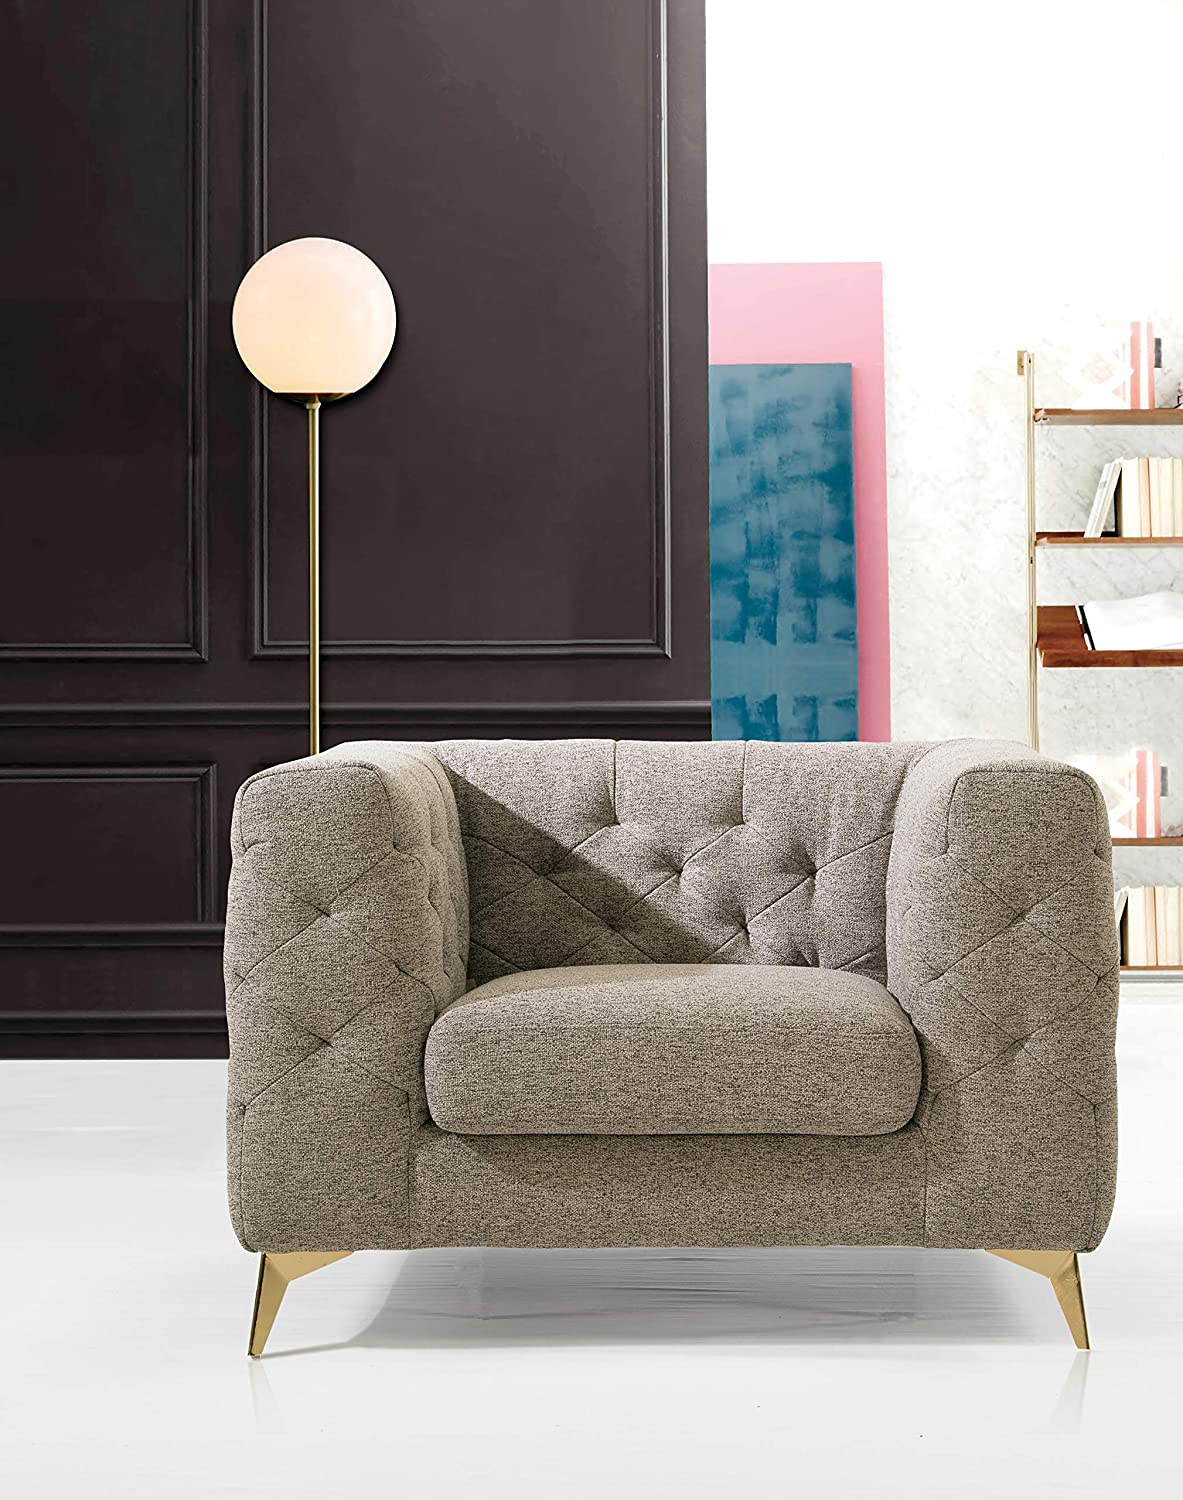 Iconic Home Soho Accent Club Chair Linen Textured Upholstery Plush Tufted Shelter Arm Solid Gold Tone Metal Legs Modern Transitional, SANDY